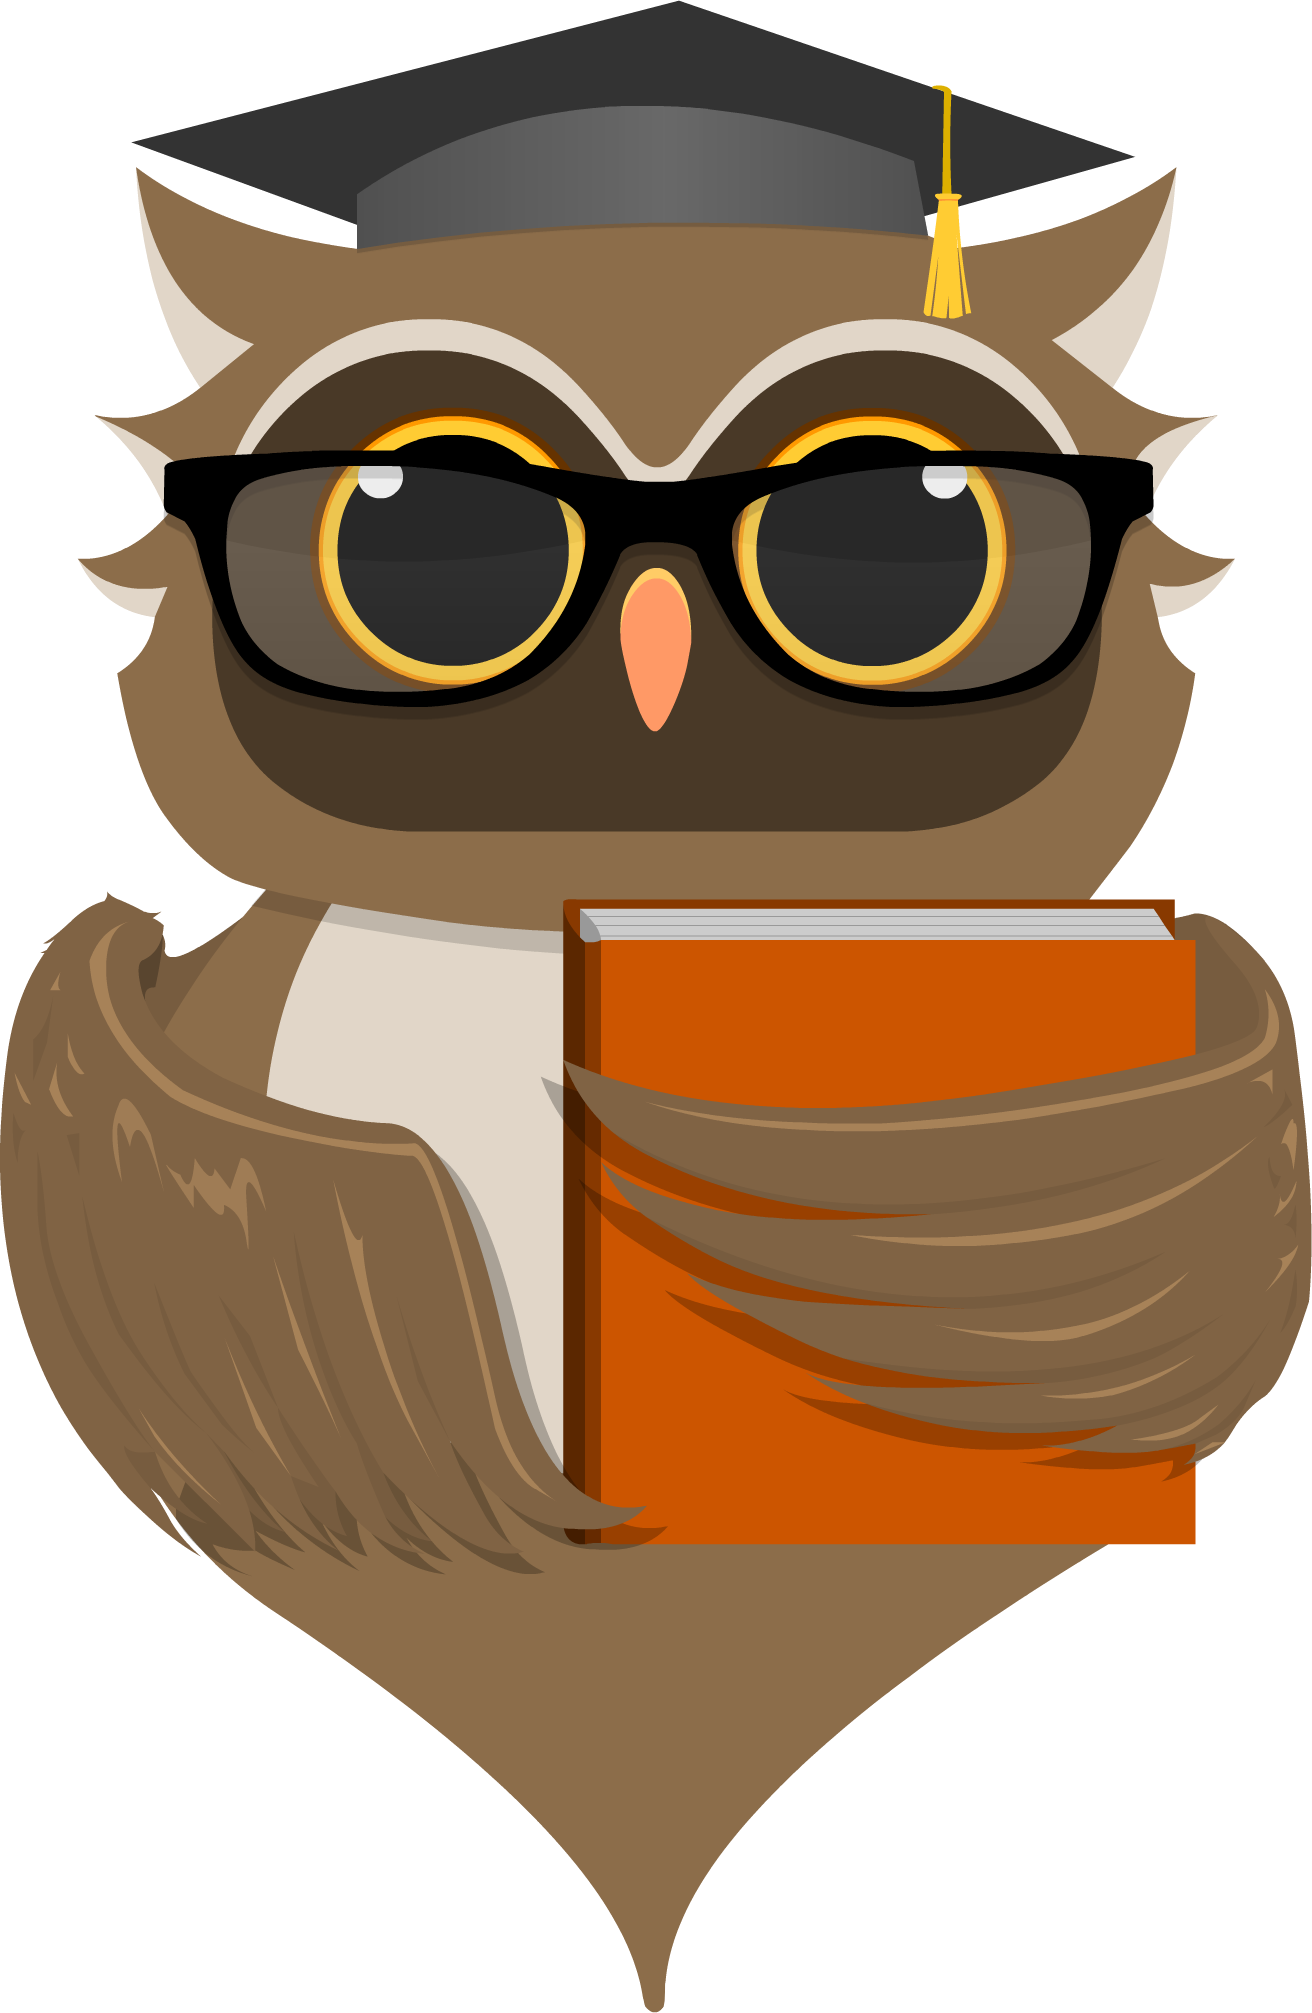 EduWise Learning is currently in development. - PNG Wise Owl